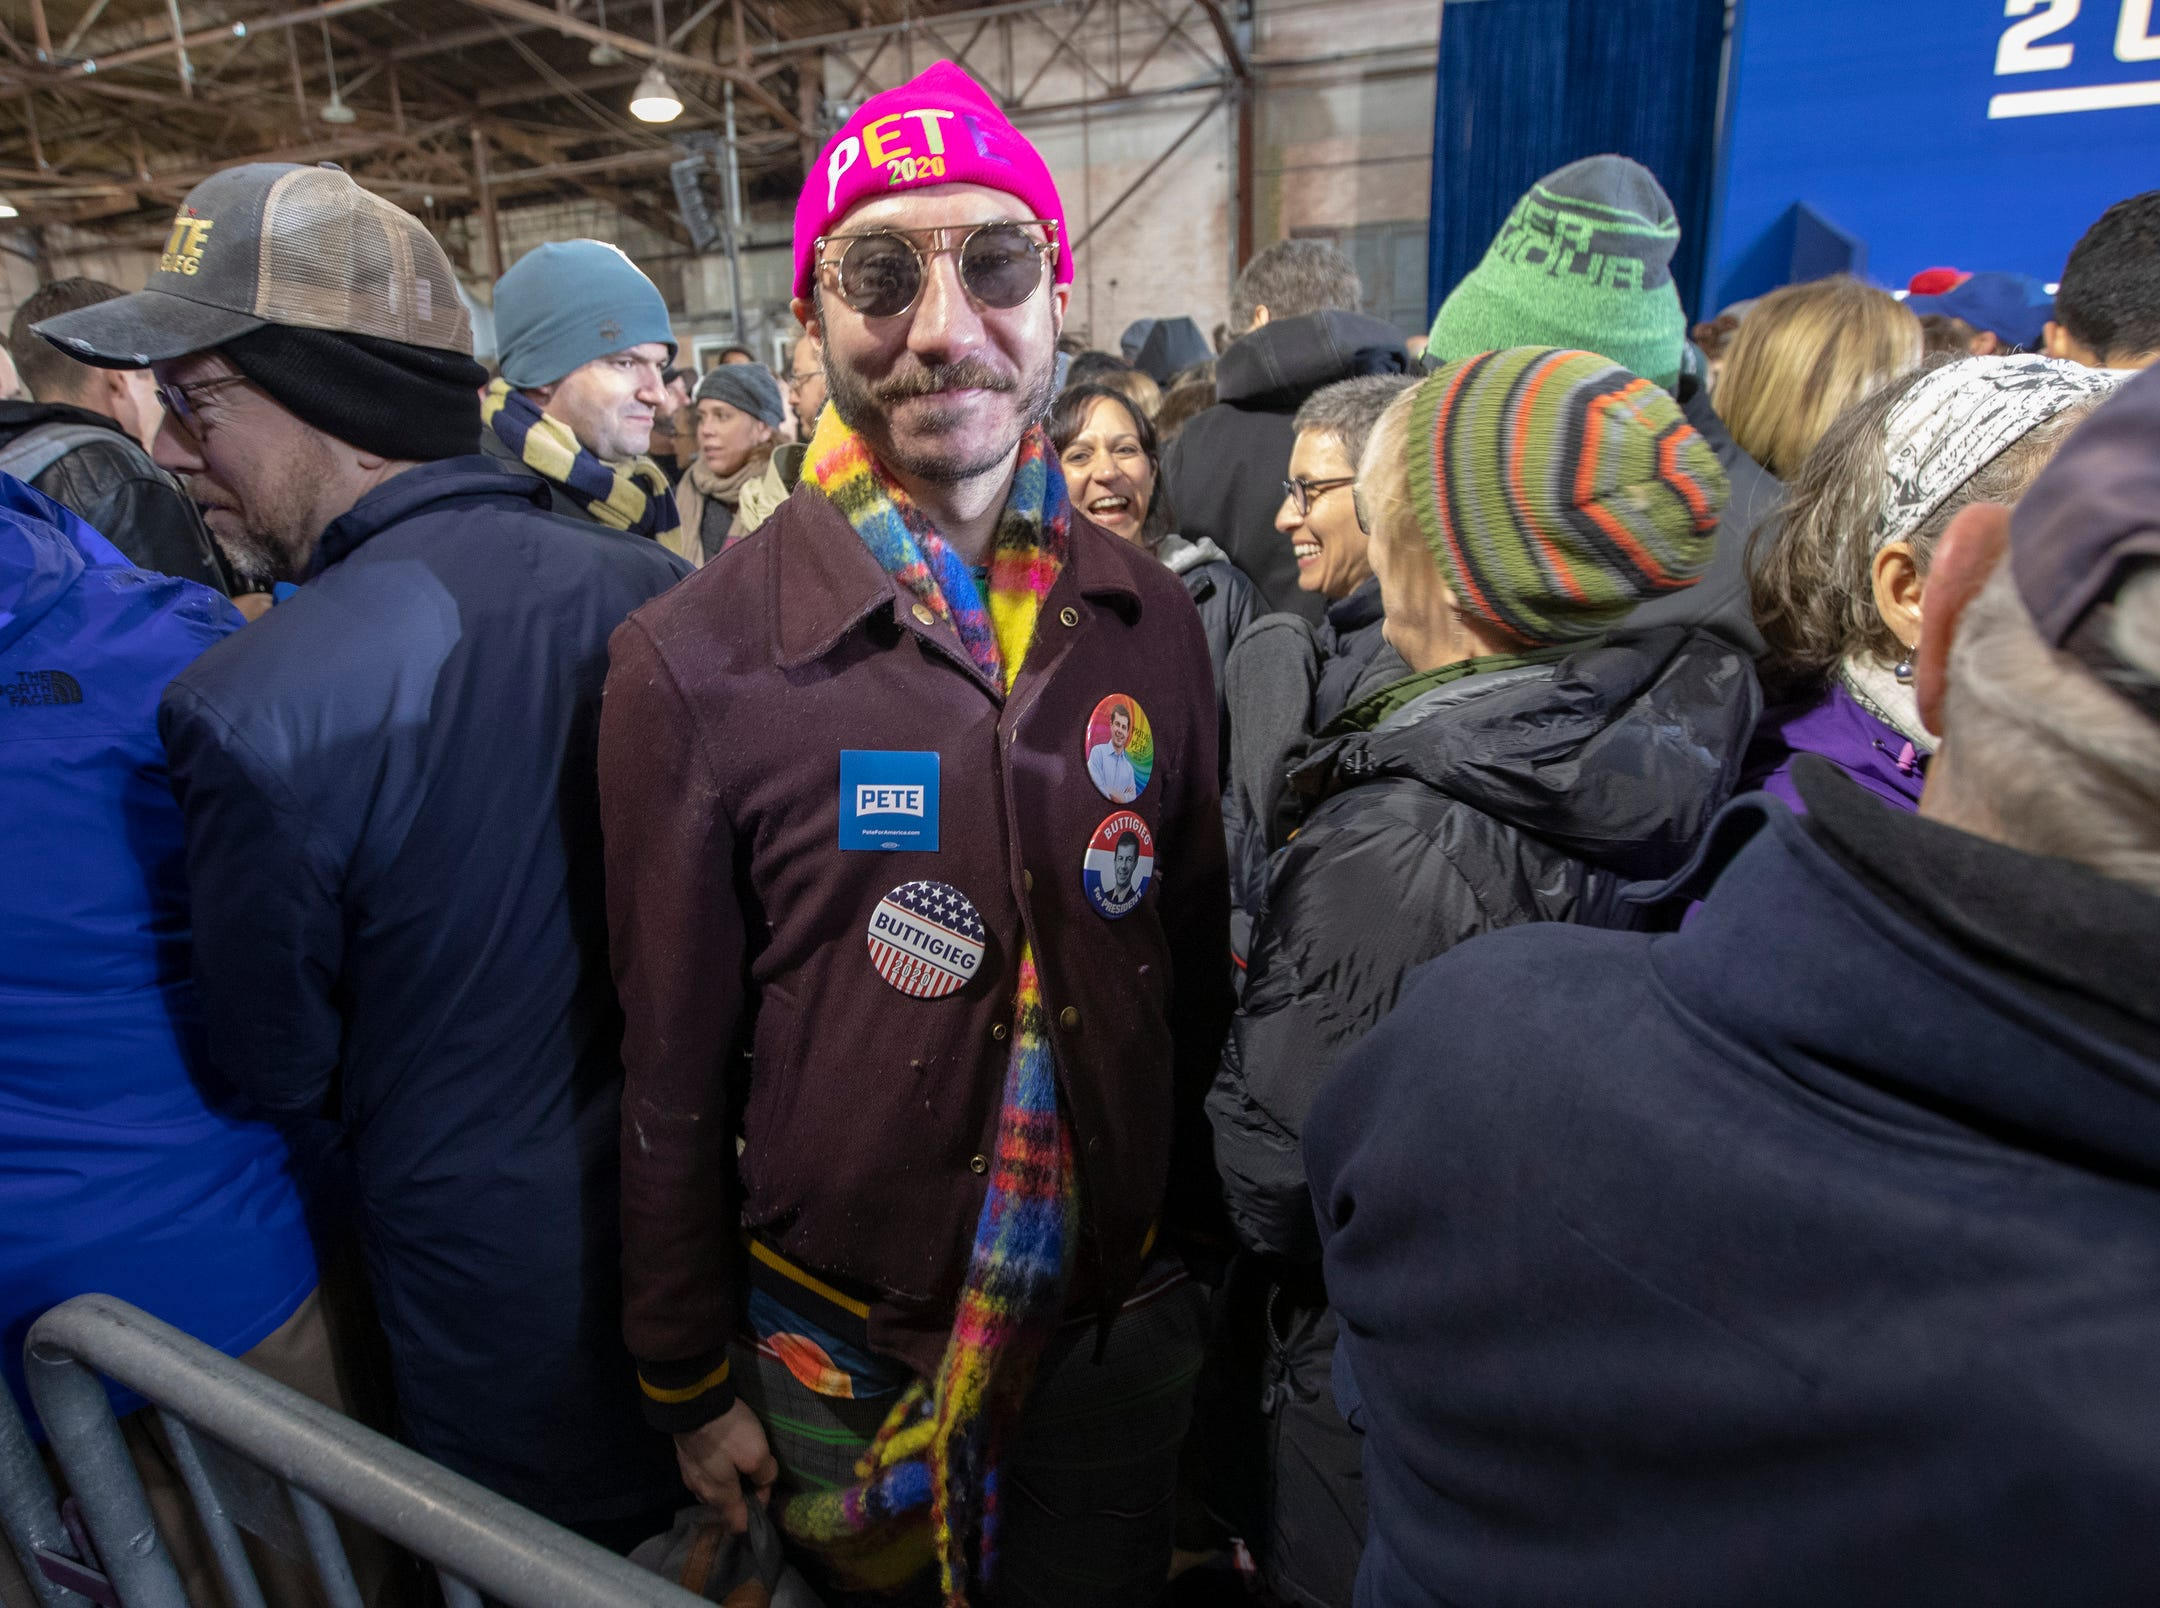 Philip Normal, an English man involved in local politics there, attends a rally for Pete Buttigieg, the Mayor of South Bend, who has announced that he is running for U.S. President, South Bend, Sunday, April 14, 2019.